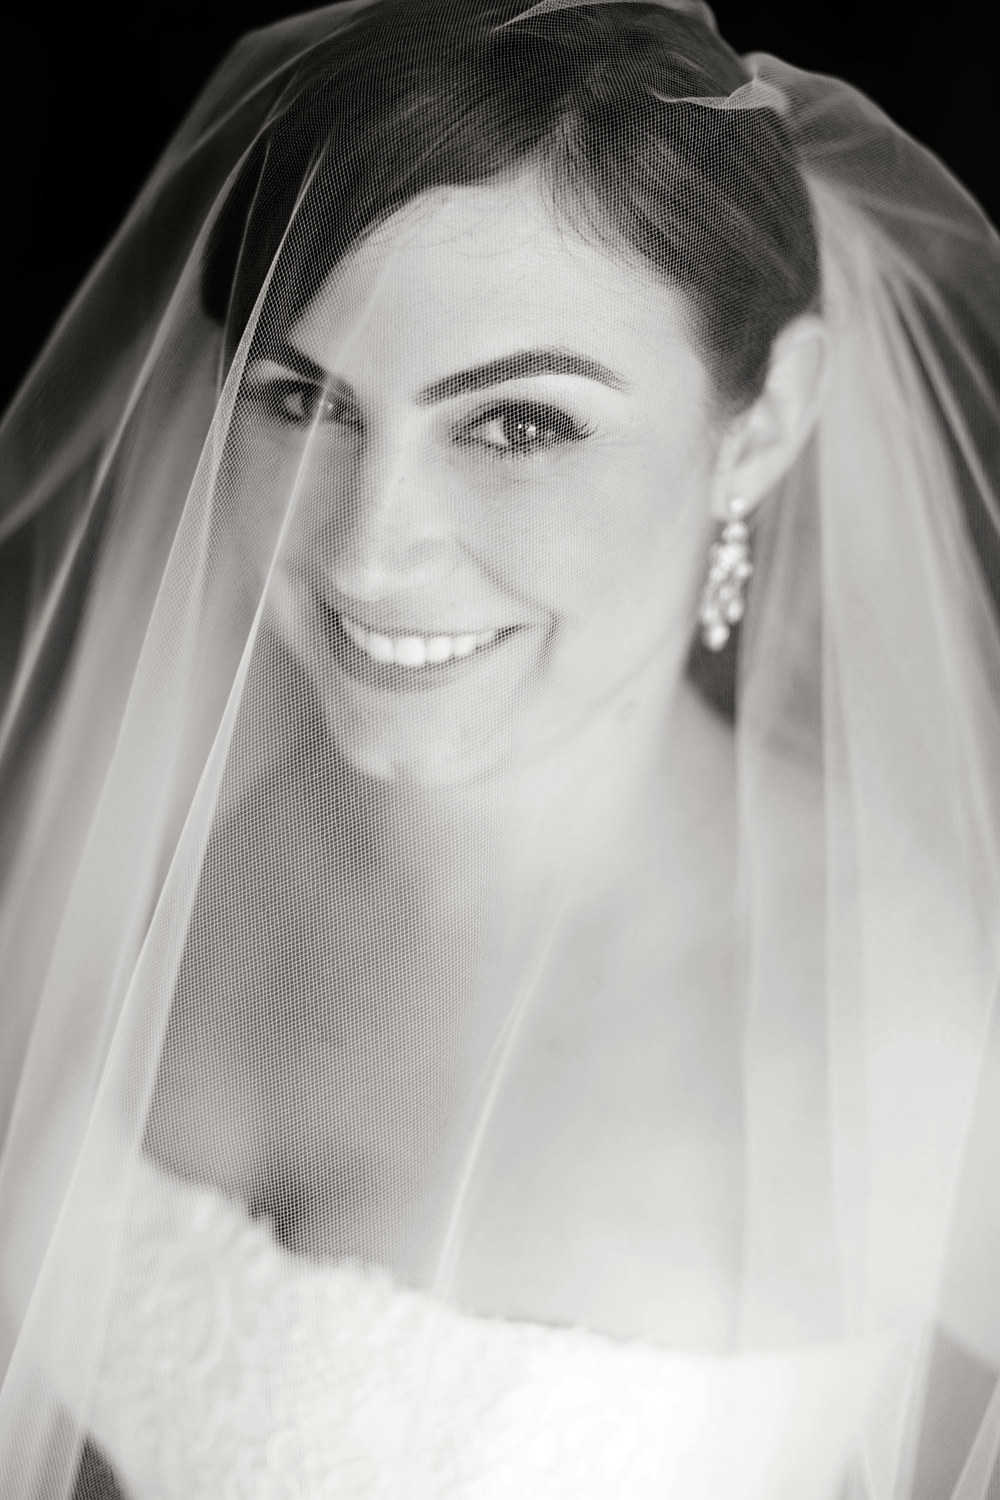 Nicole smiles for one last shot right before heading down the aisle at the Ritz Carlton Marina del Rey.